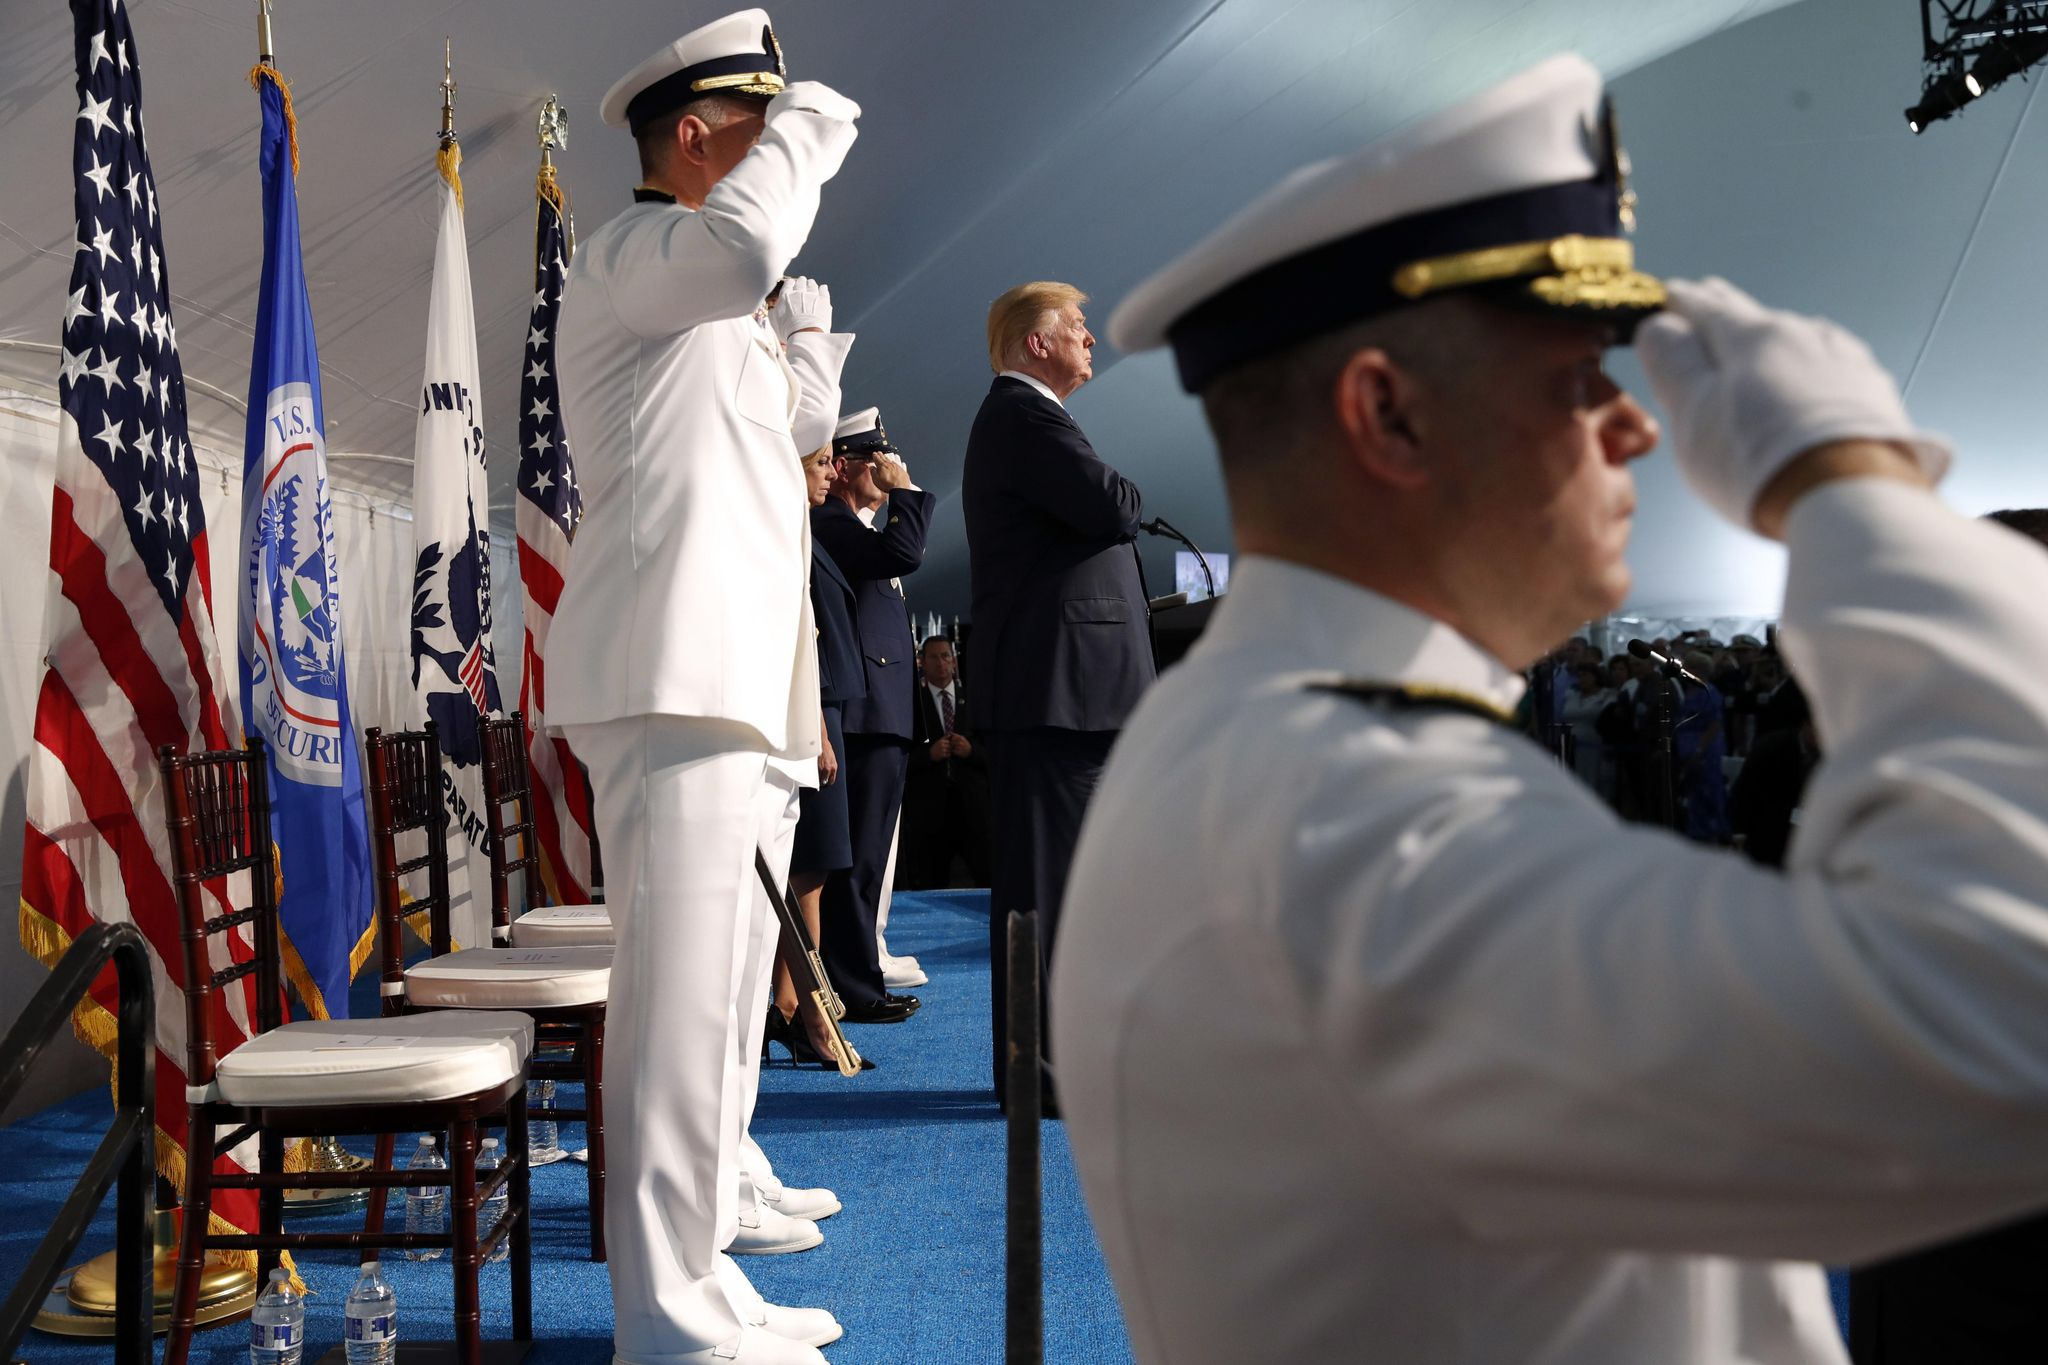 'Unacceptable': Coast Guard chief blasts shutdown, lobbies lawmakers to reopen government